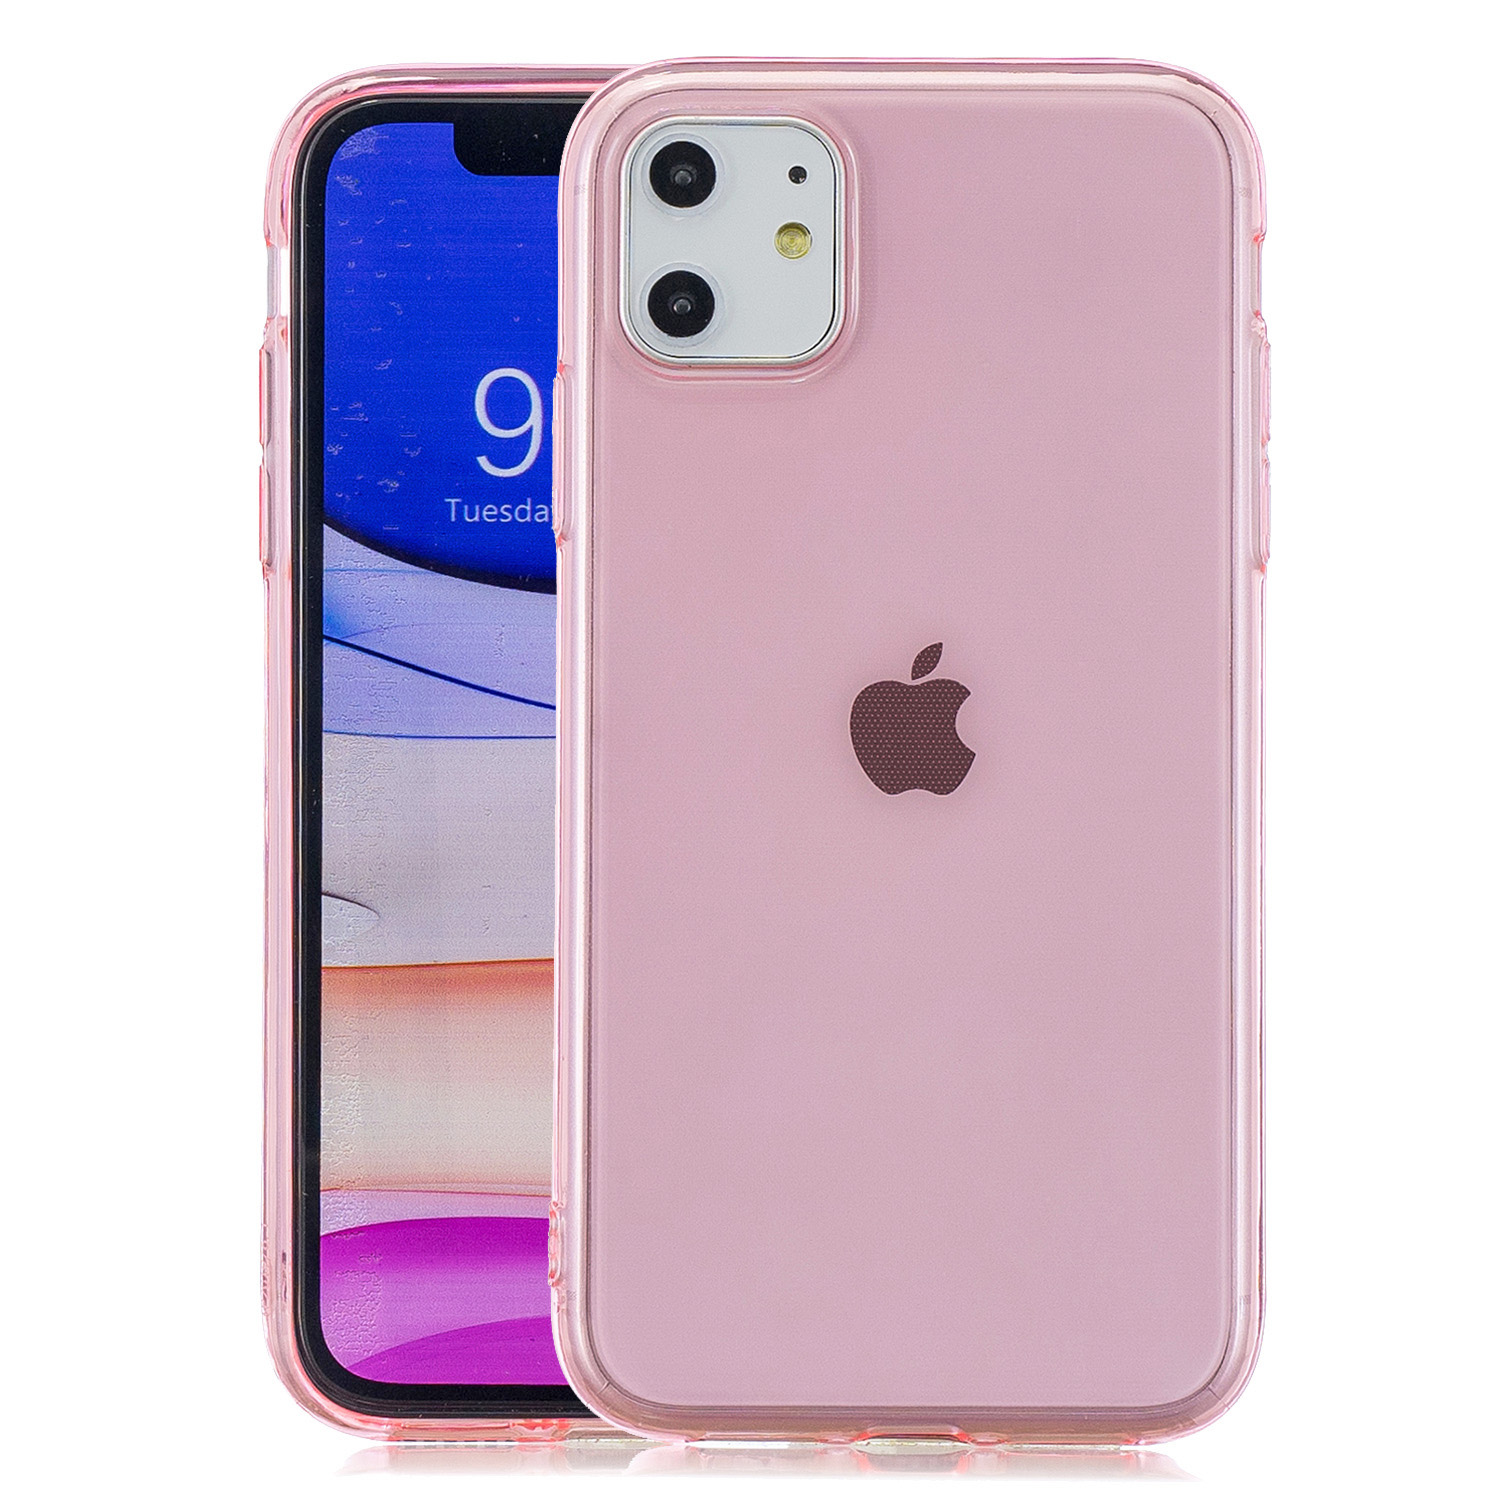 for iPhone 11 / 11 Pro / 11 Pro Max Clear Colorful TPU Back Cover Cellphone Case Shell Pink